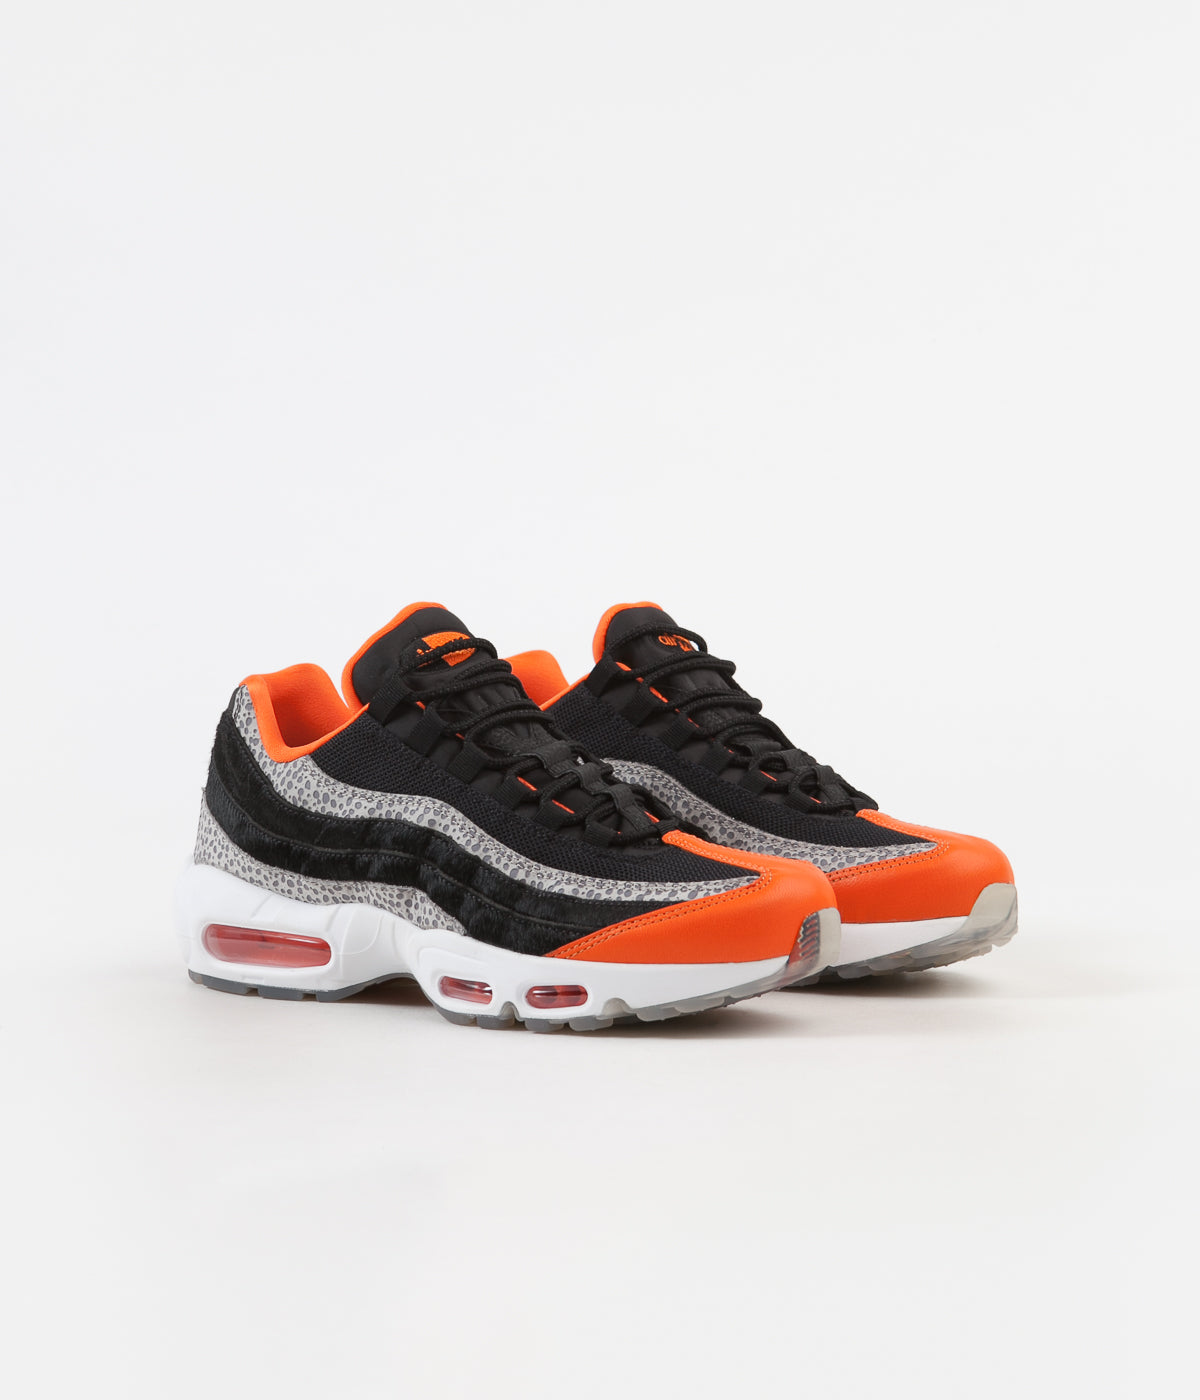 uk availability 02865 157da ... Nike Air Max 95 Shoes - Black   Black - Granite - Safety Orange ...